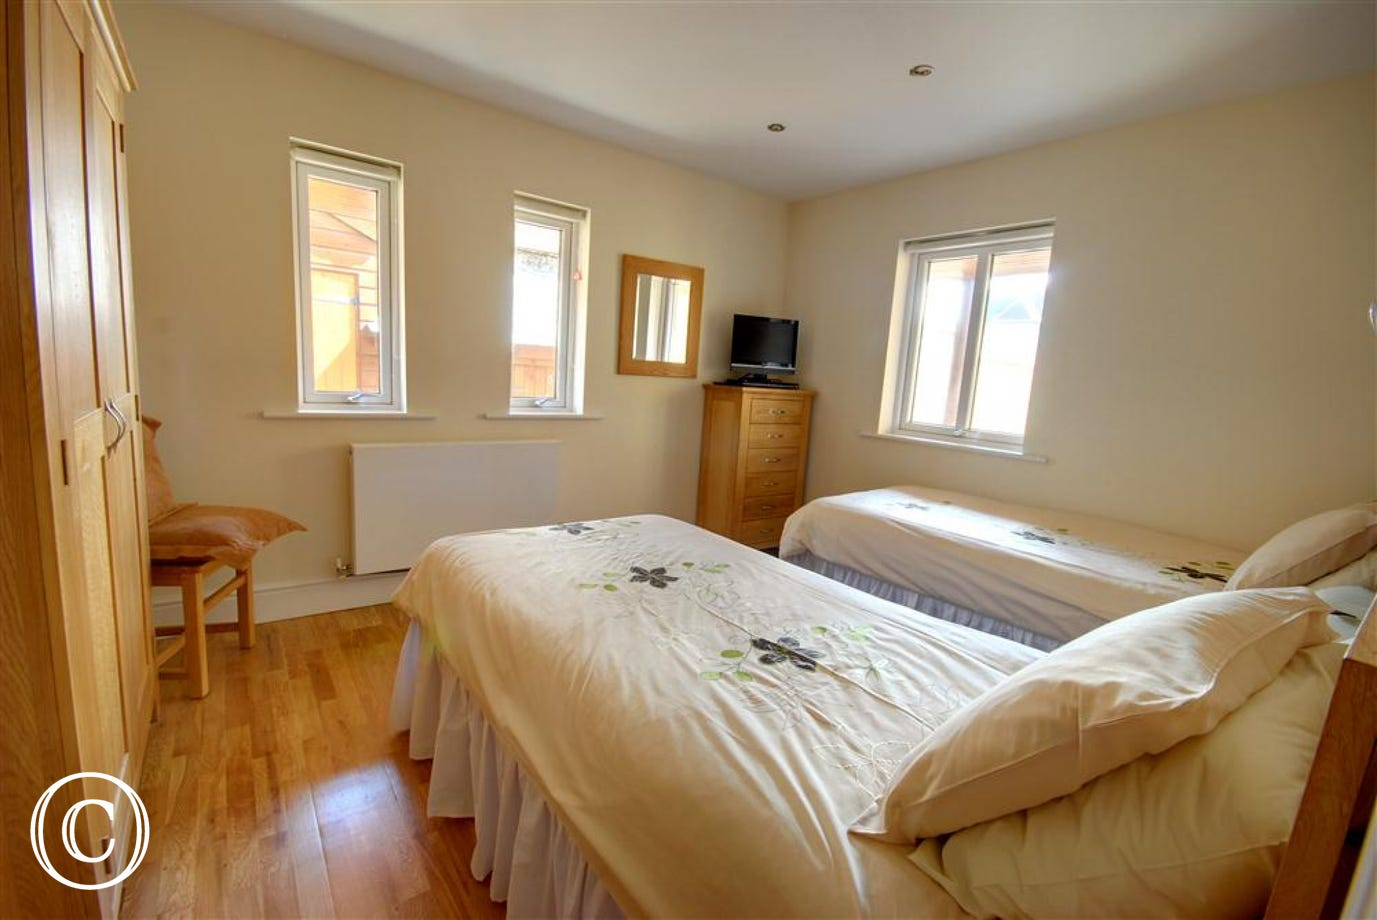 Simply decorated twin bedroom with oak flooring and matching furniture.